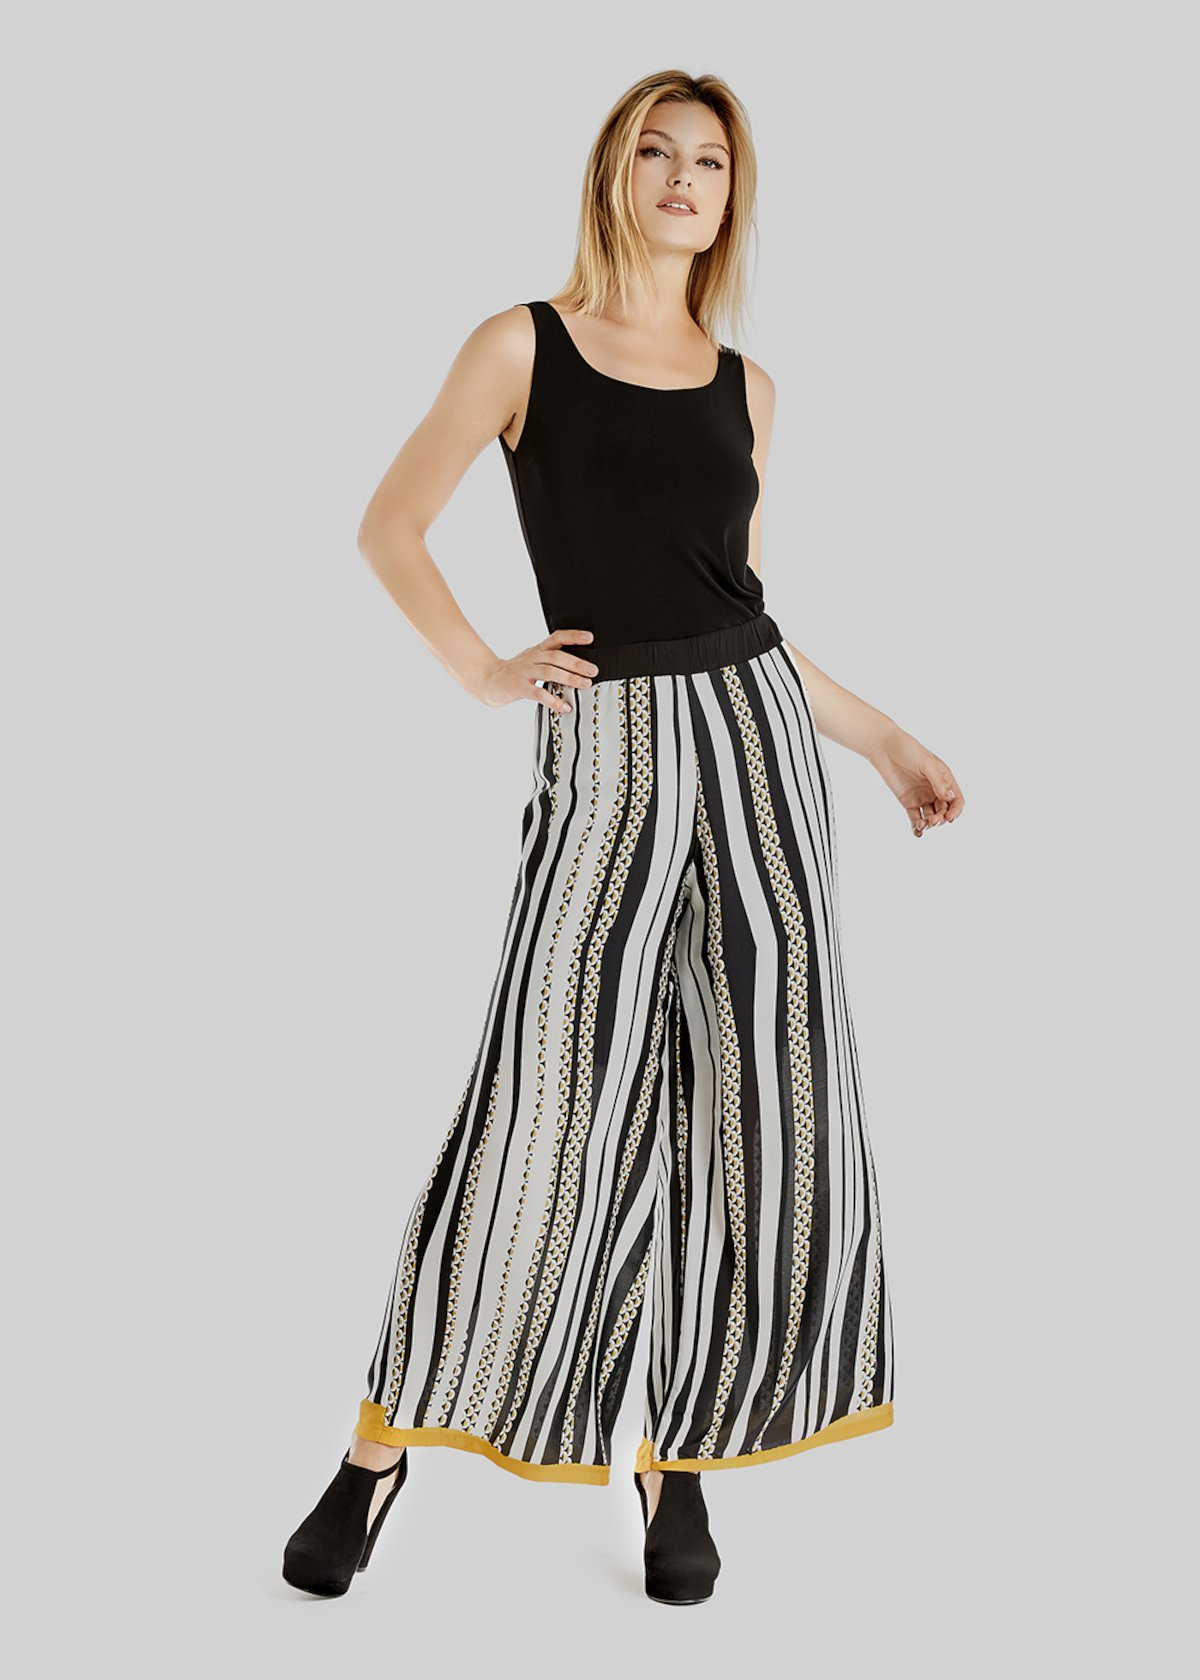 Pantaloni Payper in crepe halfmoon stripes fantasy - White / Black Stripes